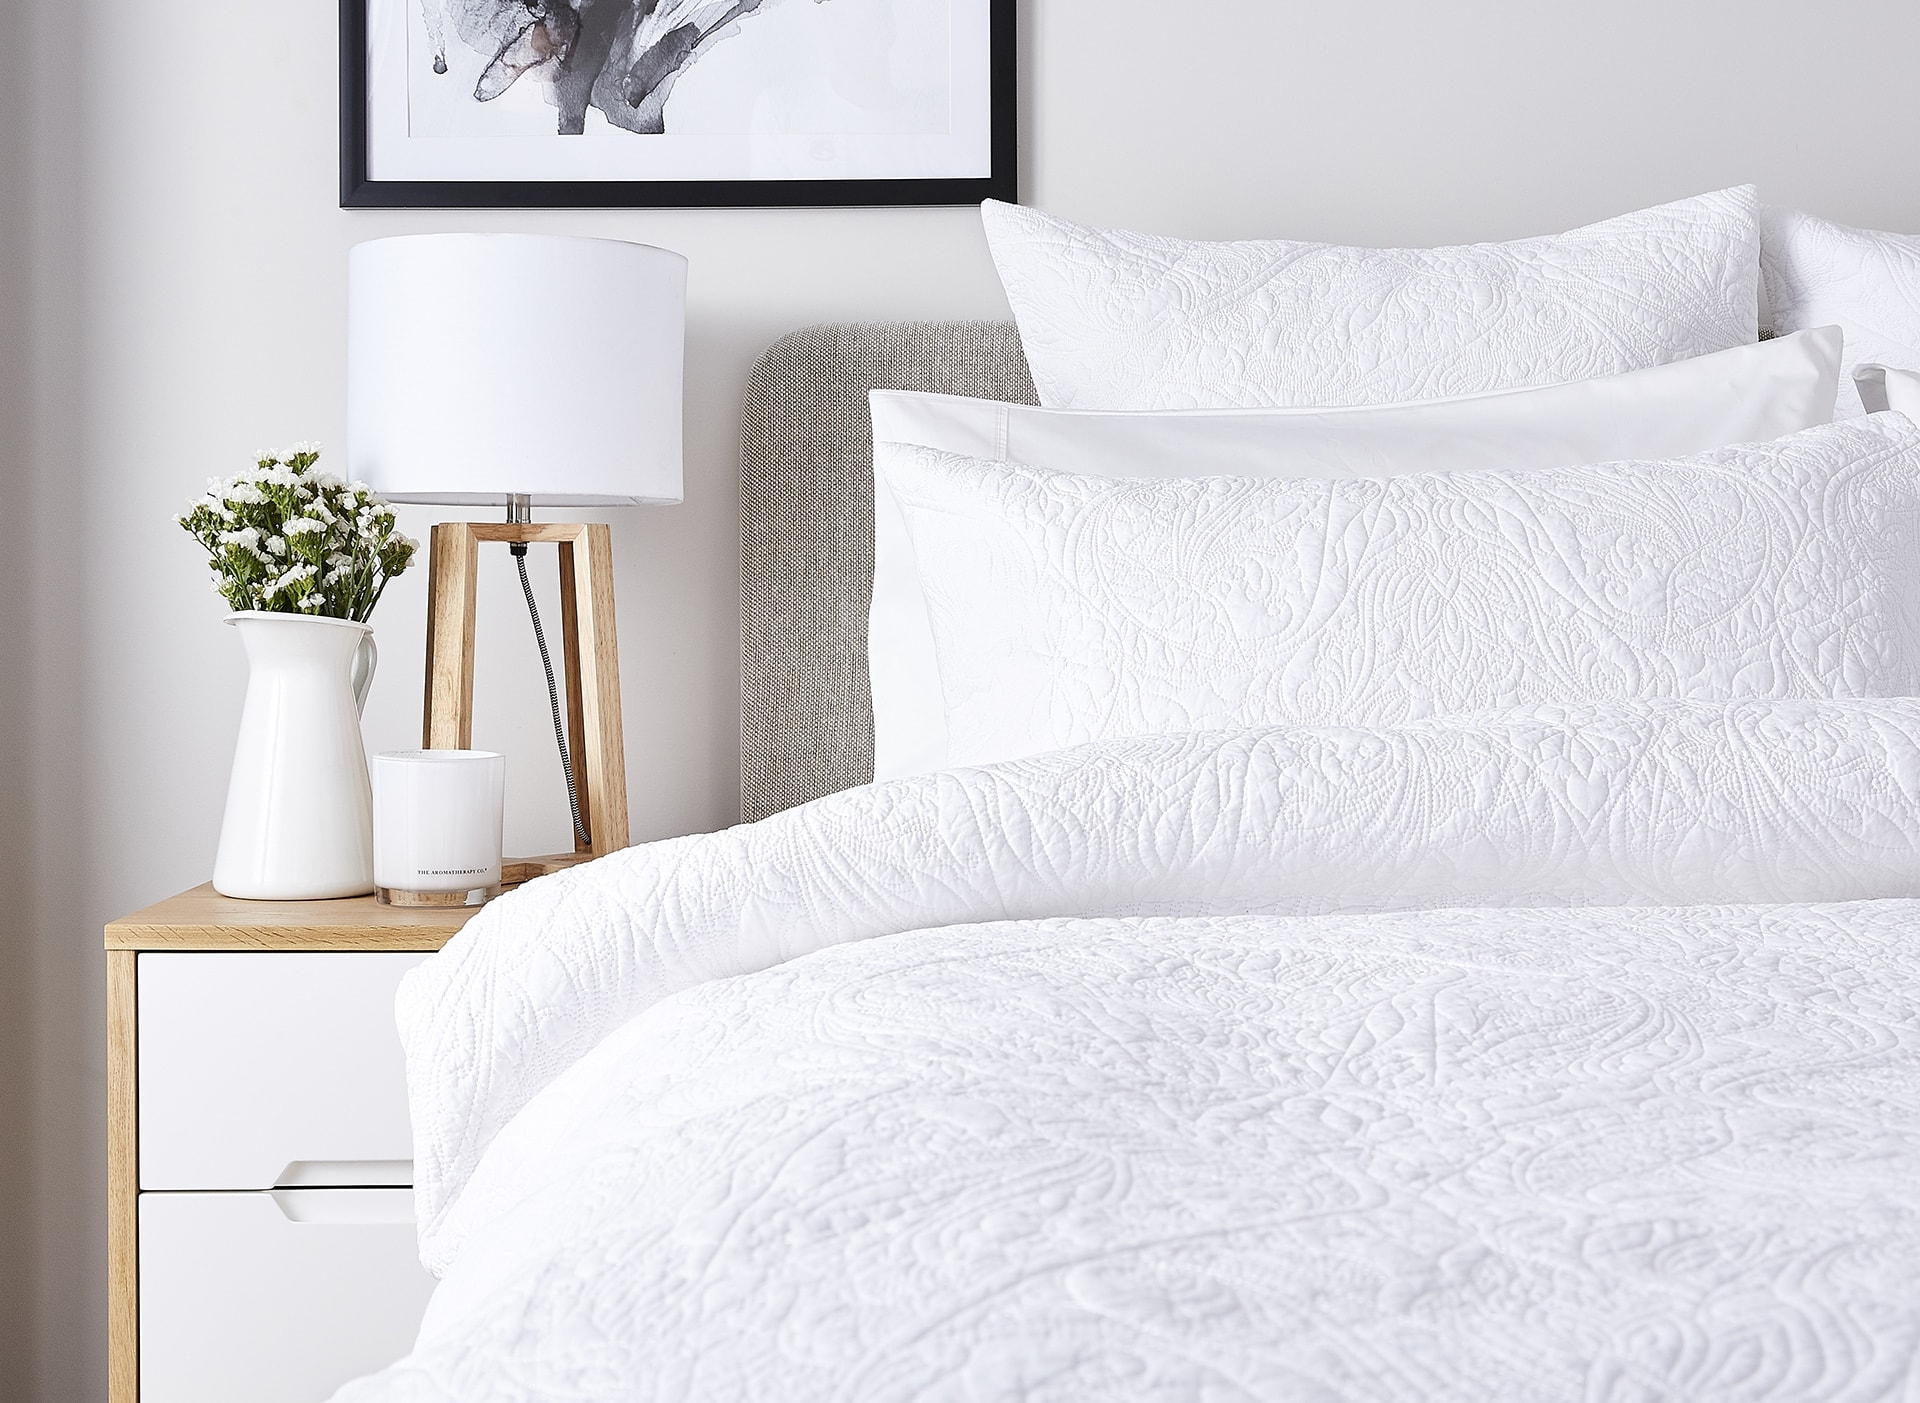 lorraine lea nook white bedding in all white room with coastal bedside table lamp